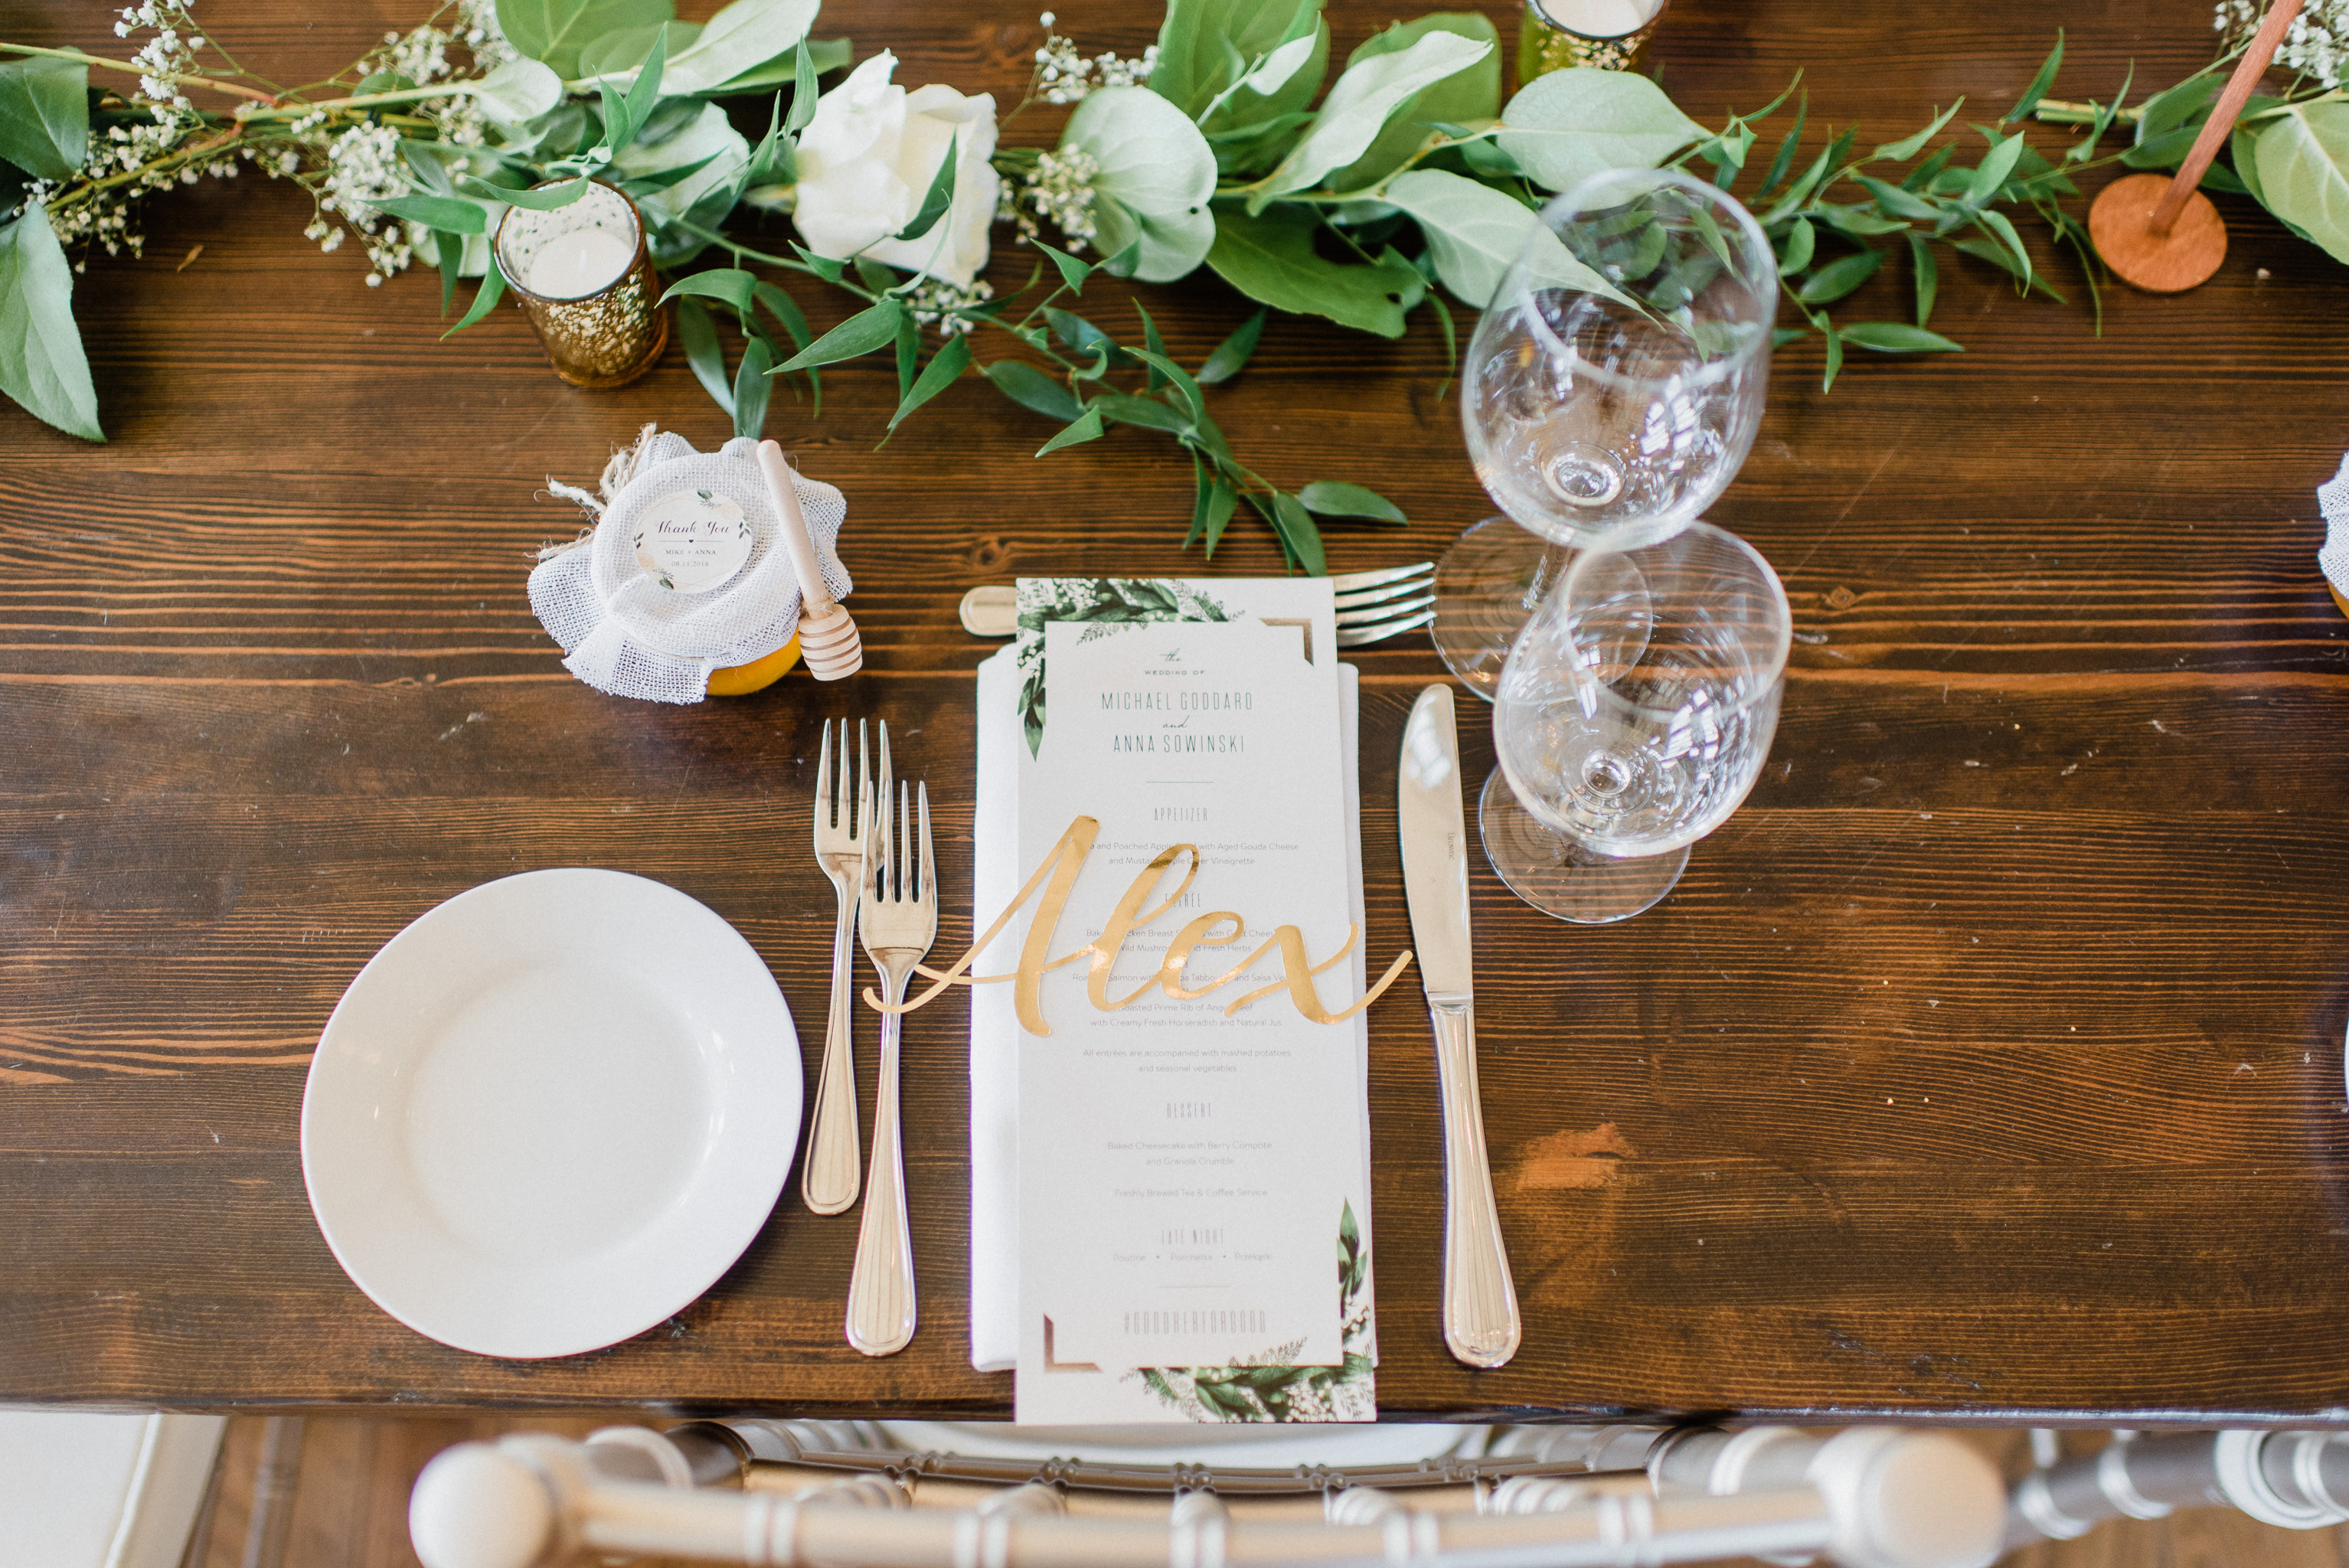 Gold Laser Cut Place Cards | Earth to Table Farm wedding by Jenn Kavanagh Photography